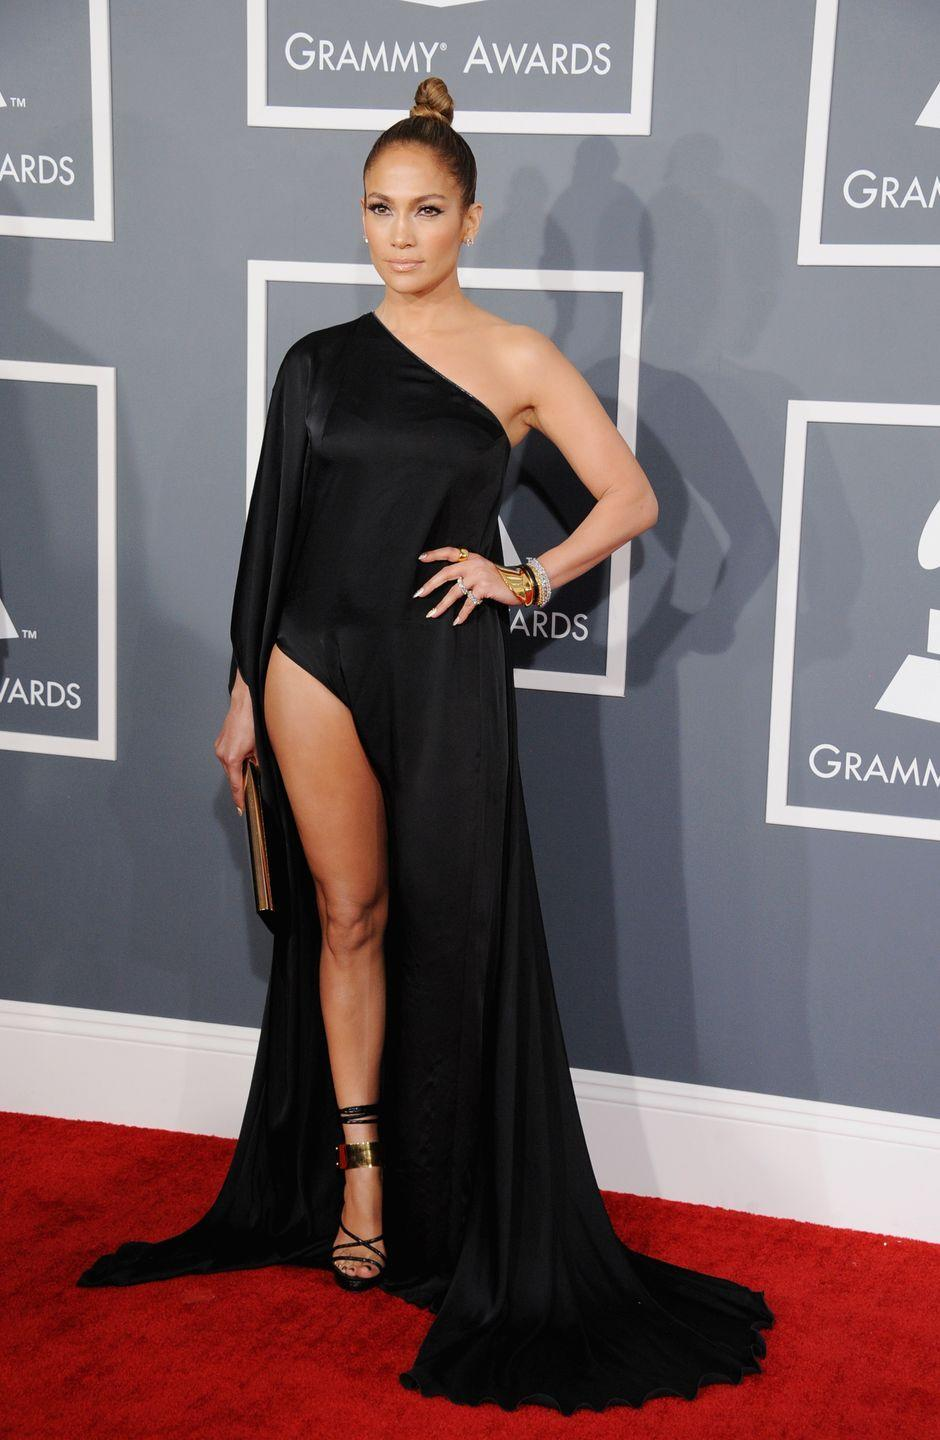 <p><strong>When: </strong>February 2013</p><p><strong>Where: </strong>The Grammys</p><p><strong>Wearing: </strong>Anthony Vaccarello</p>